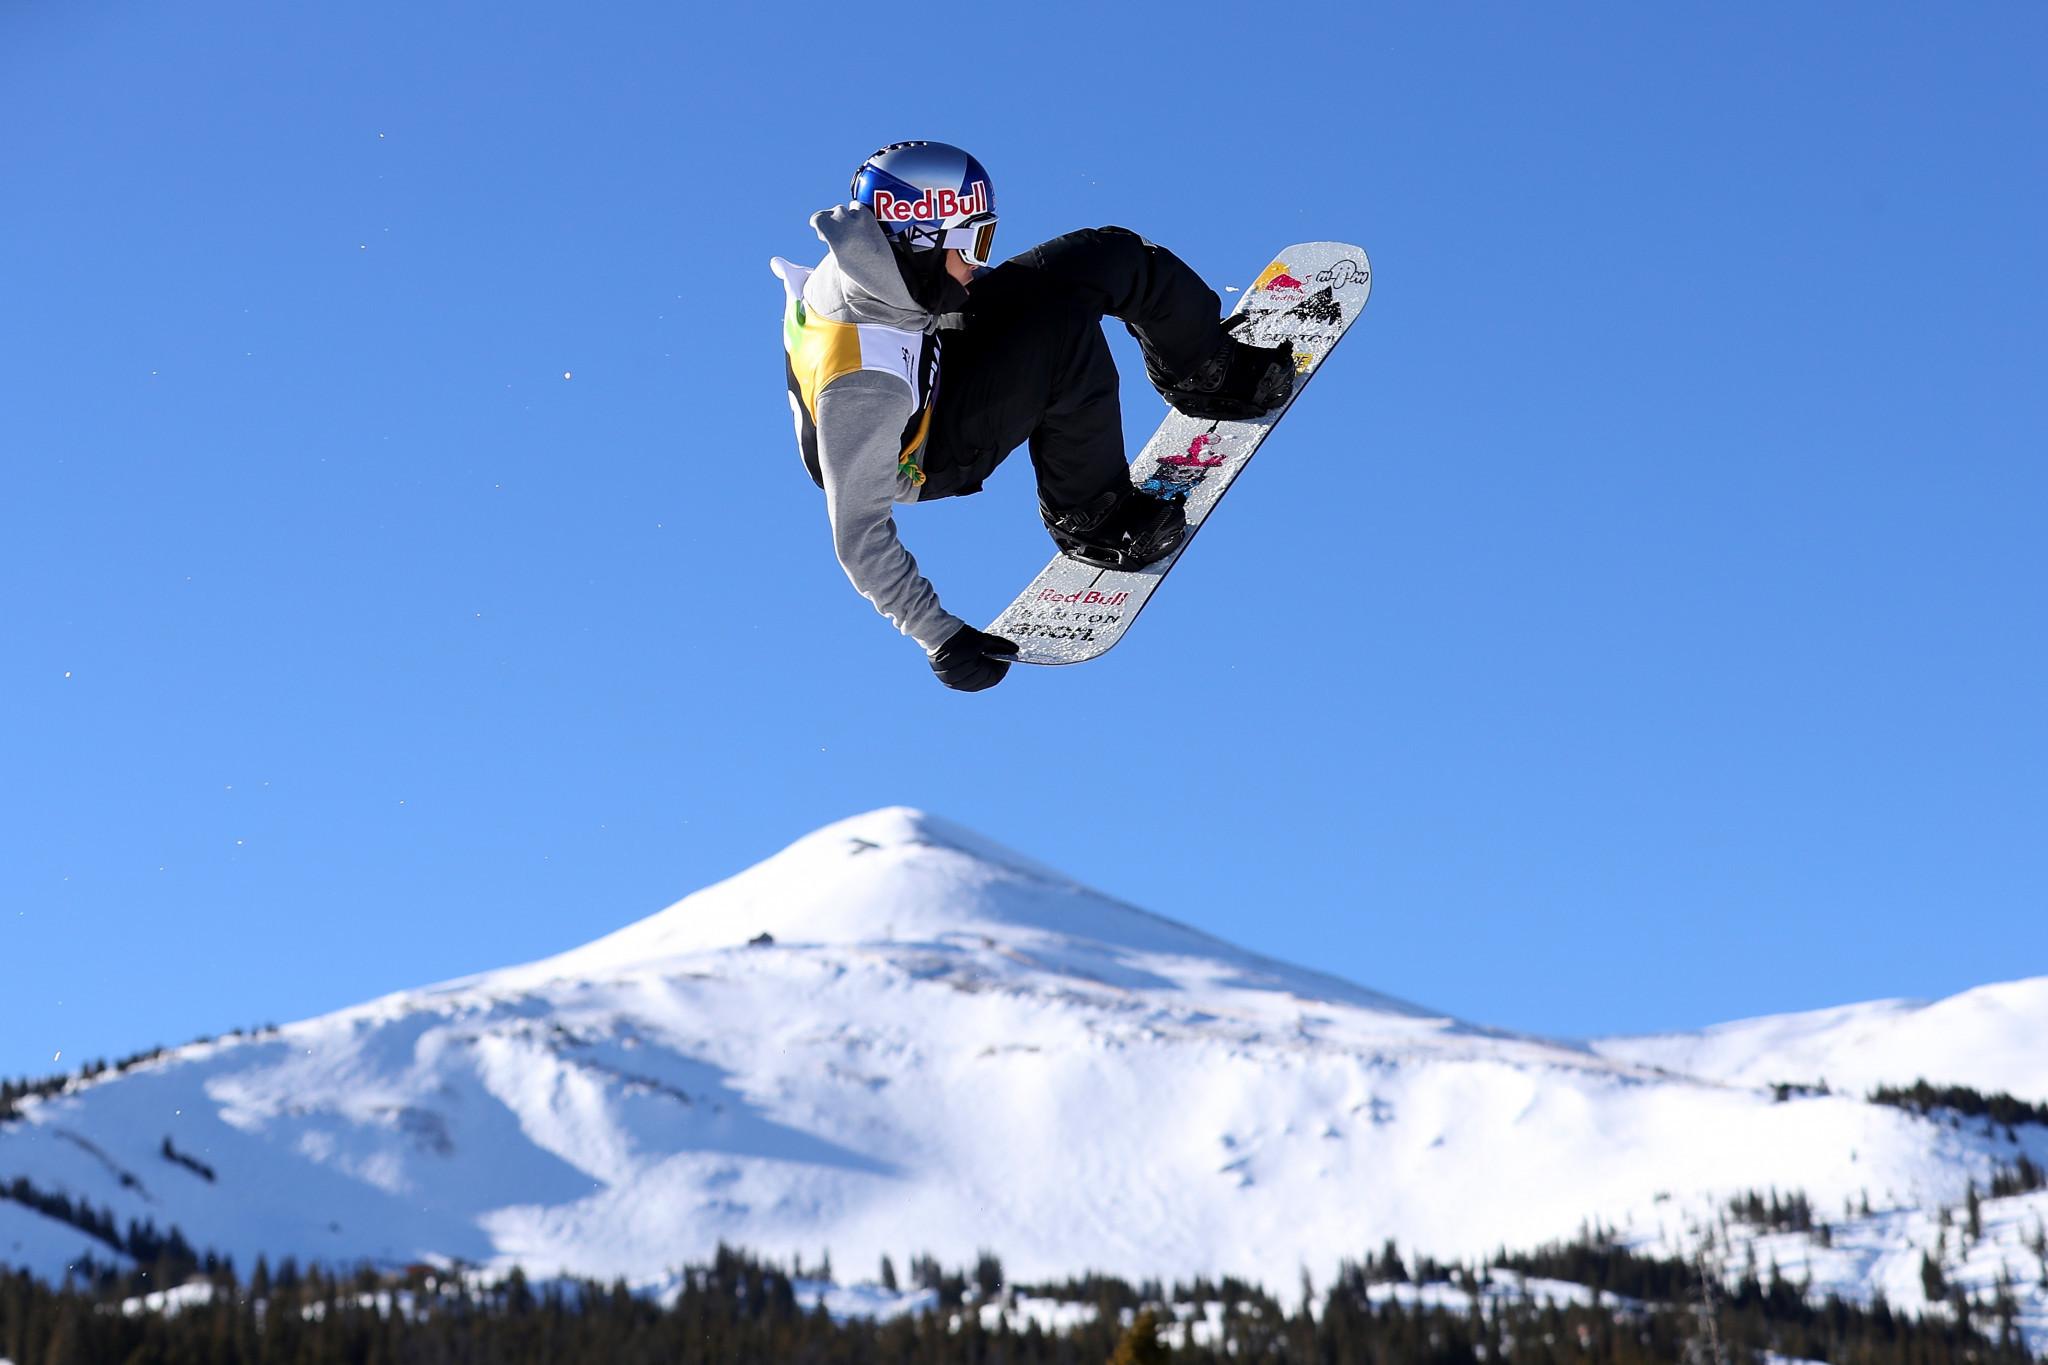 Otsuka leads qualification for finals of slopestyle FIS Snowboard World Cup in Kreischberg after Secret Garden success